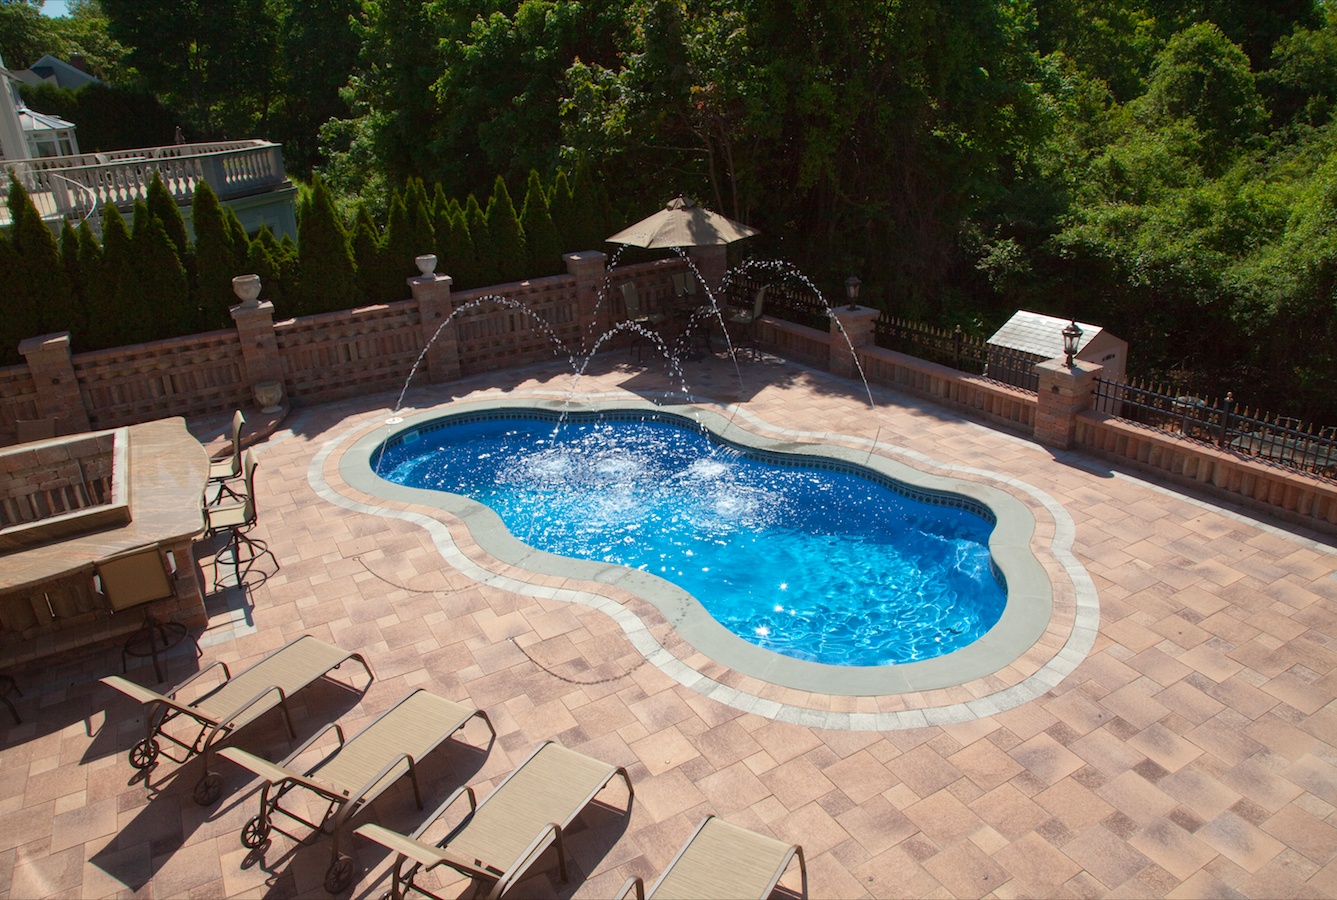 Deciding on Concrete Pavers for Your Pool Patio Installation ...